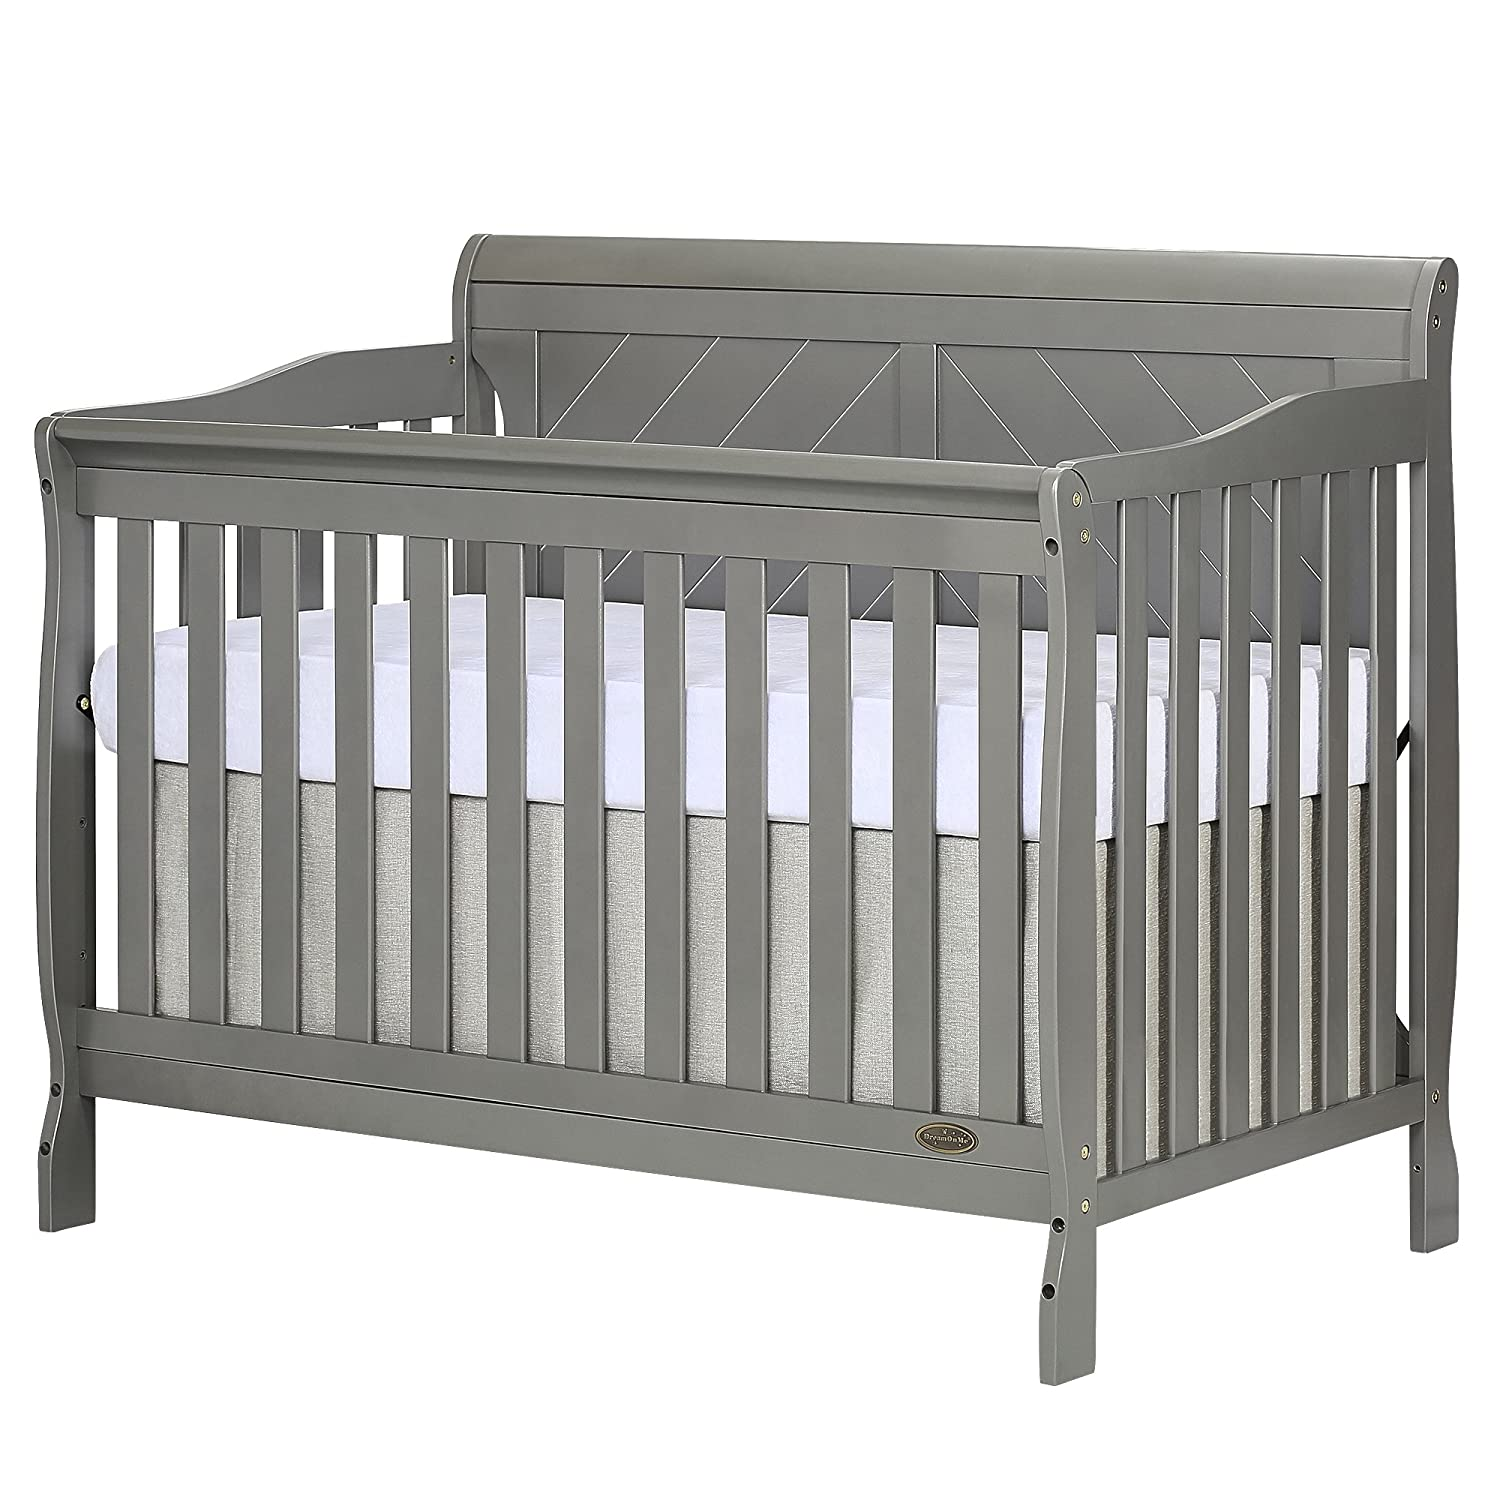 Dream On Me Ashton Full Panel Convertible 5-in-1 Crib, Storm Grey